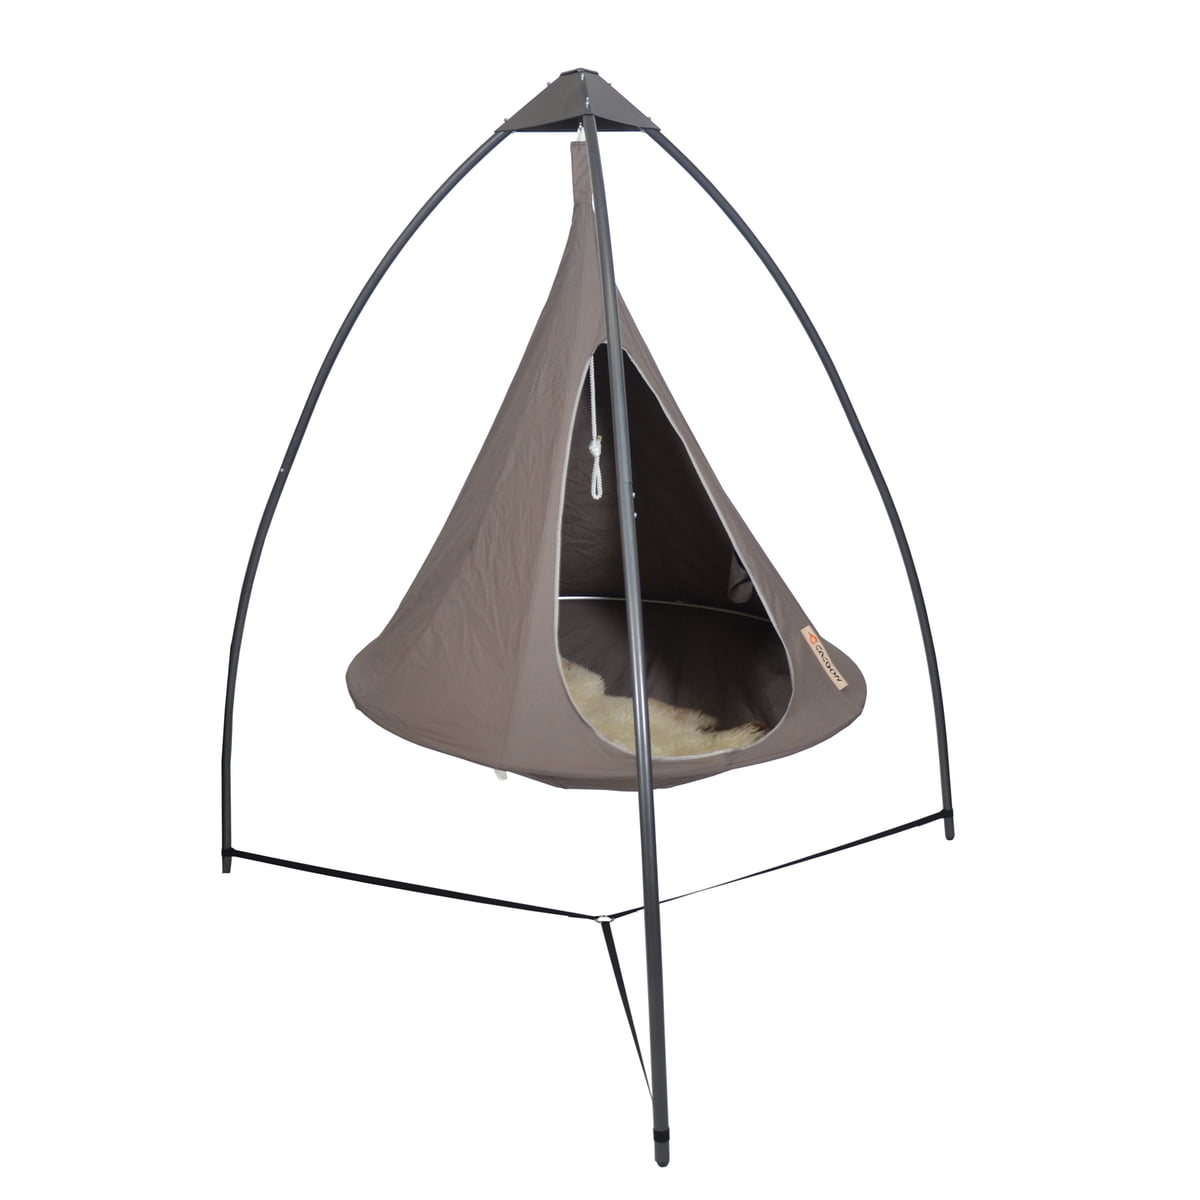 cacoon tripod for swing chair metal hanging chair single - Metal Swing Frame